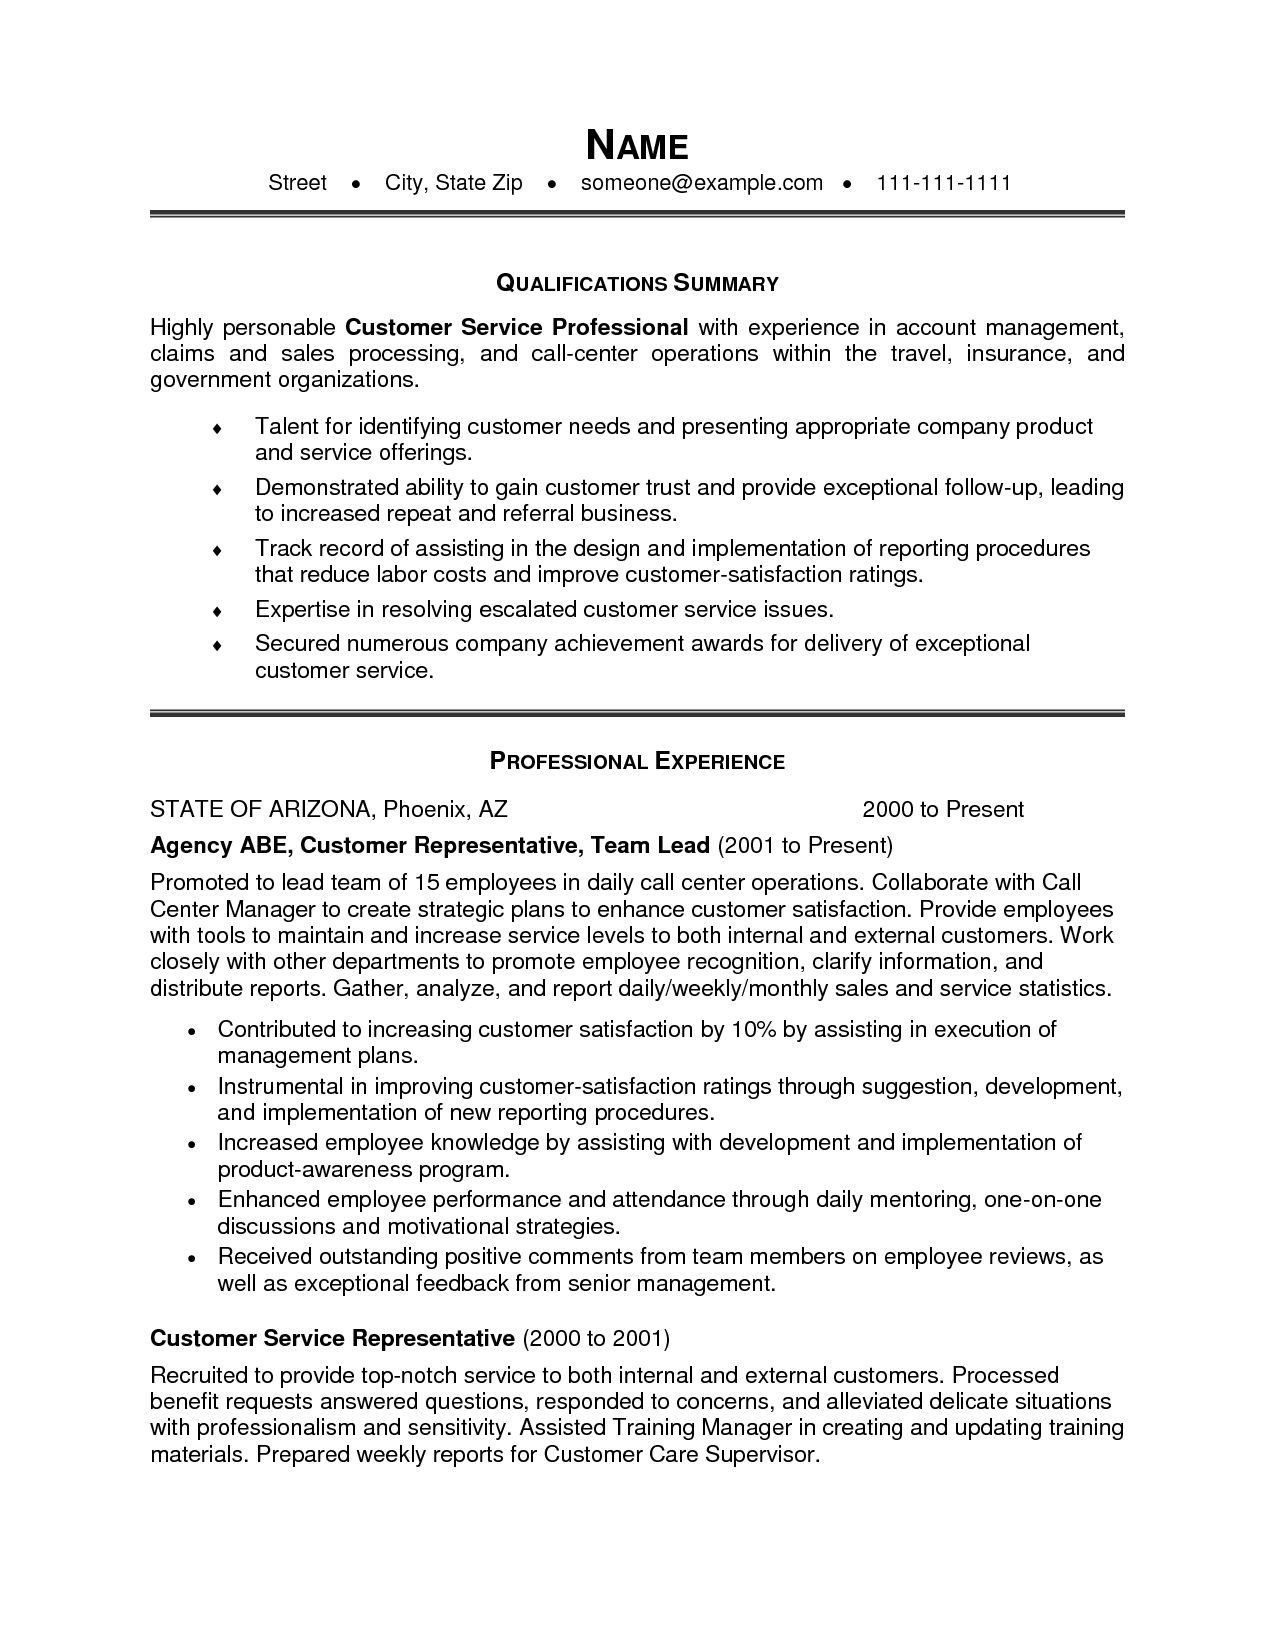 customer service resume objective or summary examples for spell job example of ojt molly Resume Objective Examples For Customer Service Resume